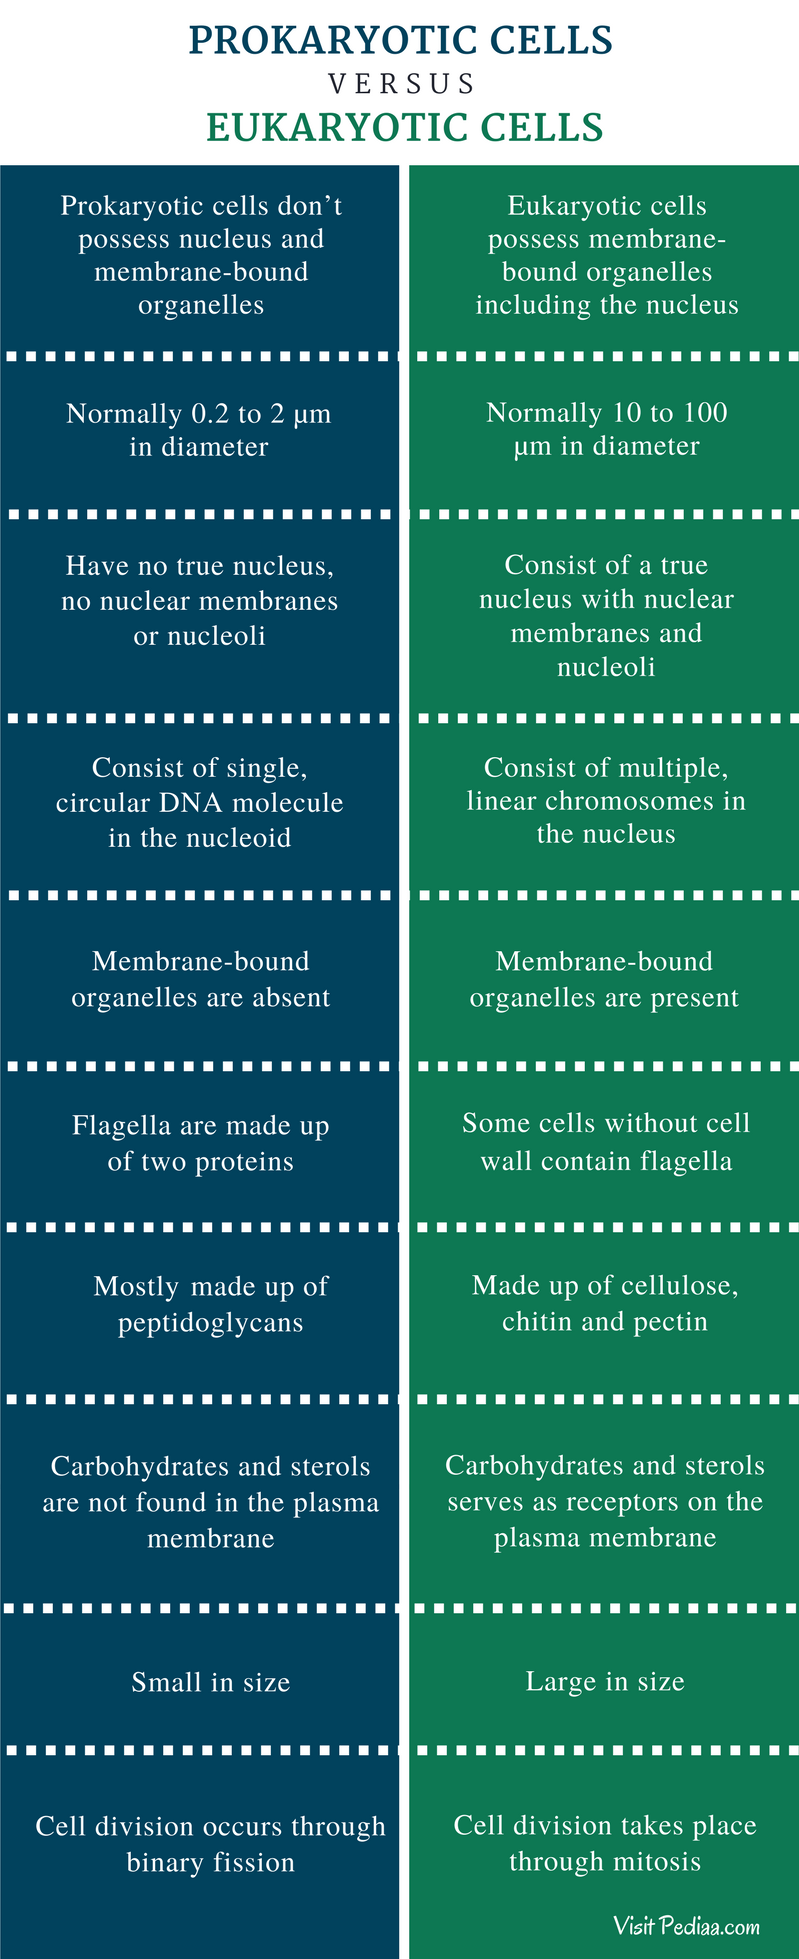 Difference Between Prokaryotic And Eukaryotic Cells - Comparison Summary